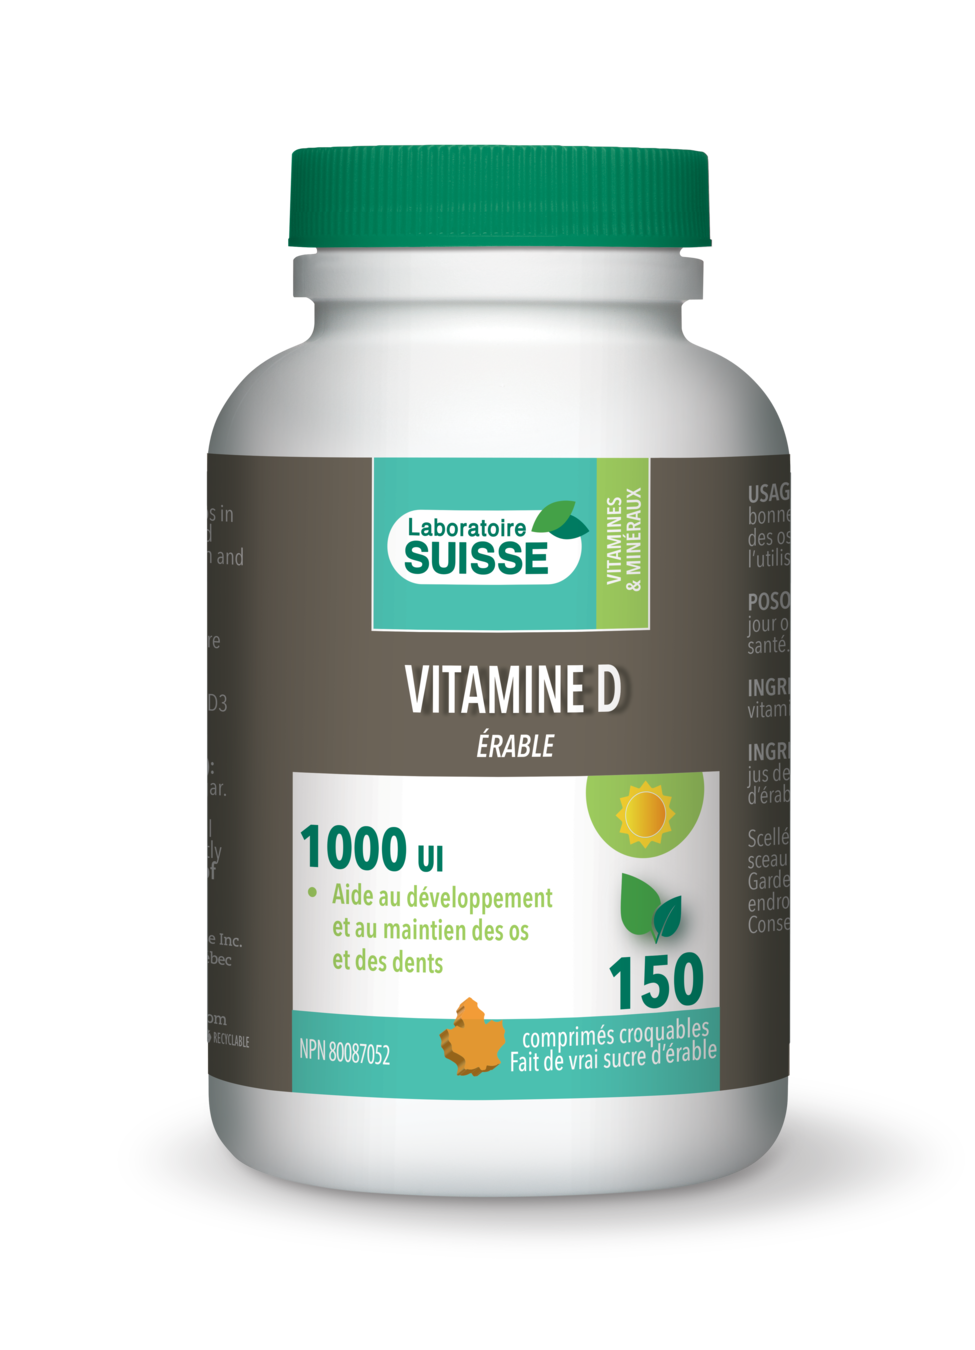 Vitamine D à l'érable